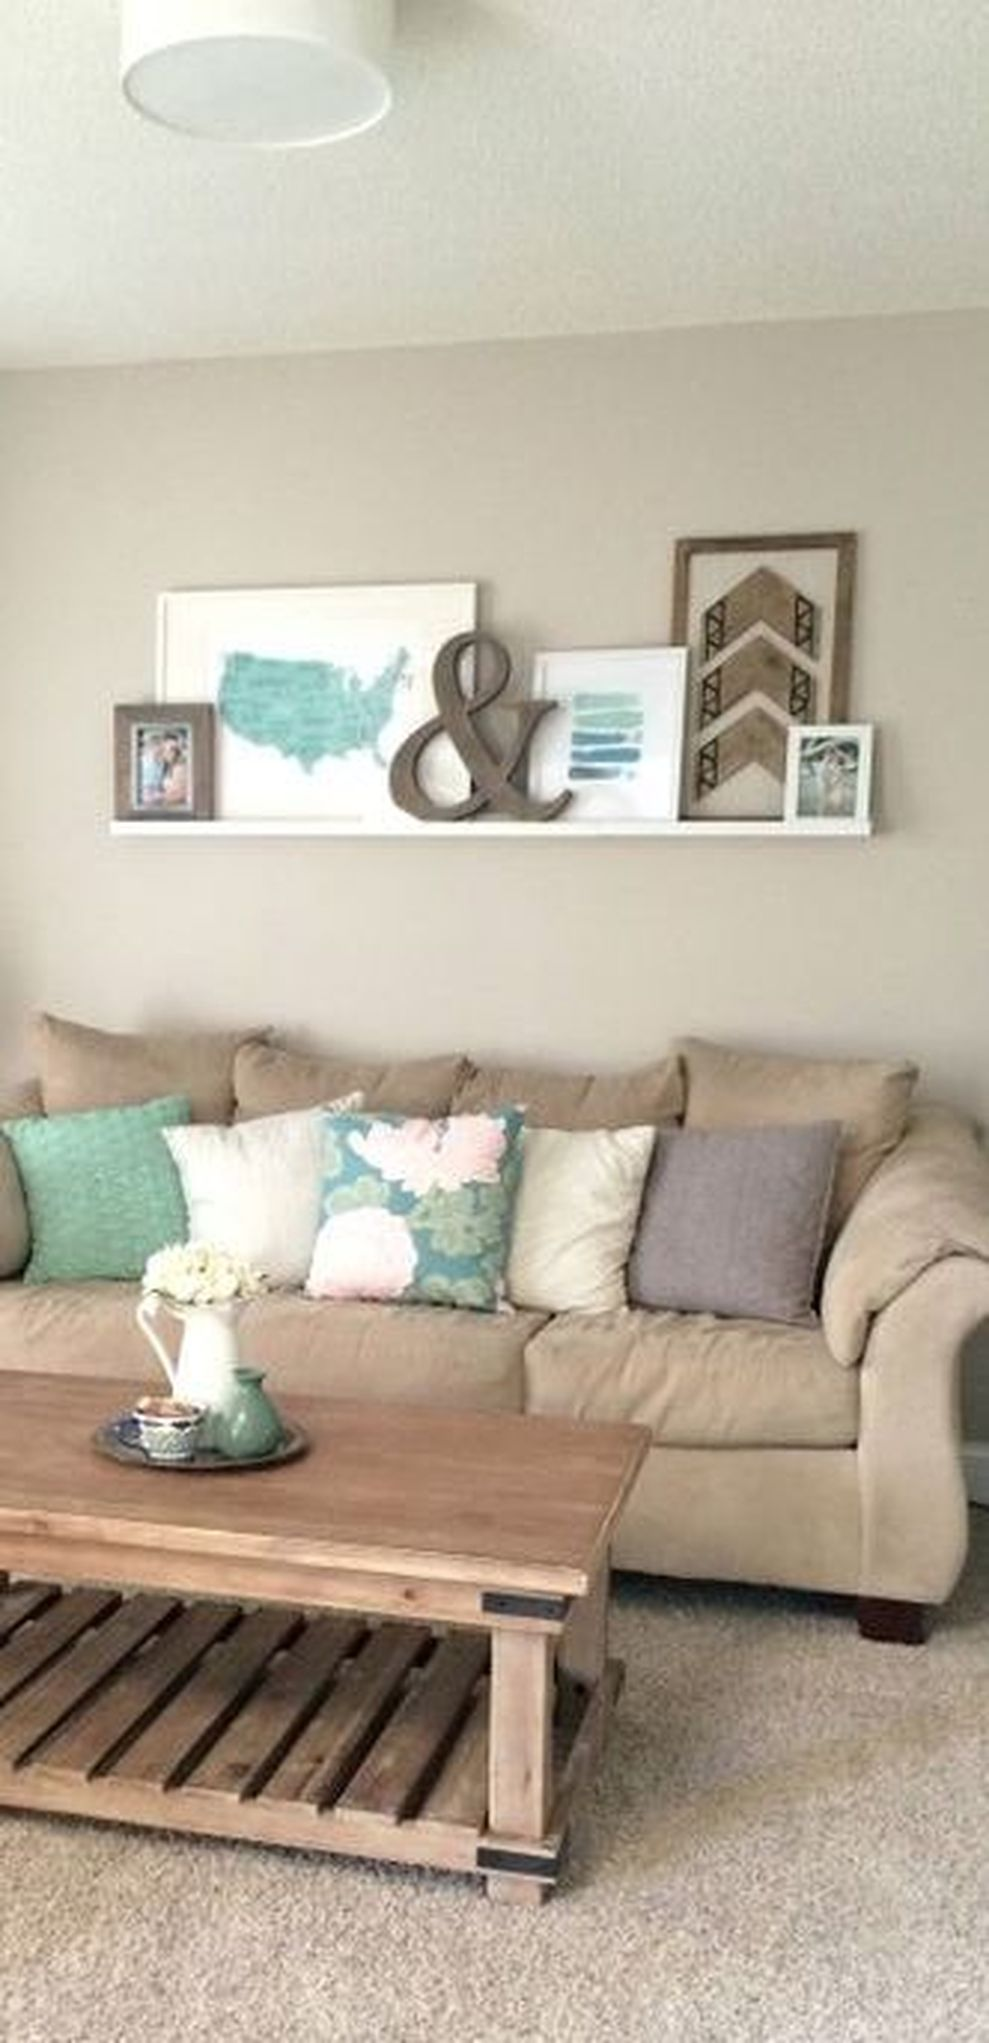 Cute apartment bedroom ideas you will love 24 - ROUNDECOR on Simple But Cute Room Ideas  id=80822